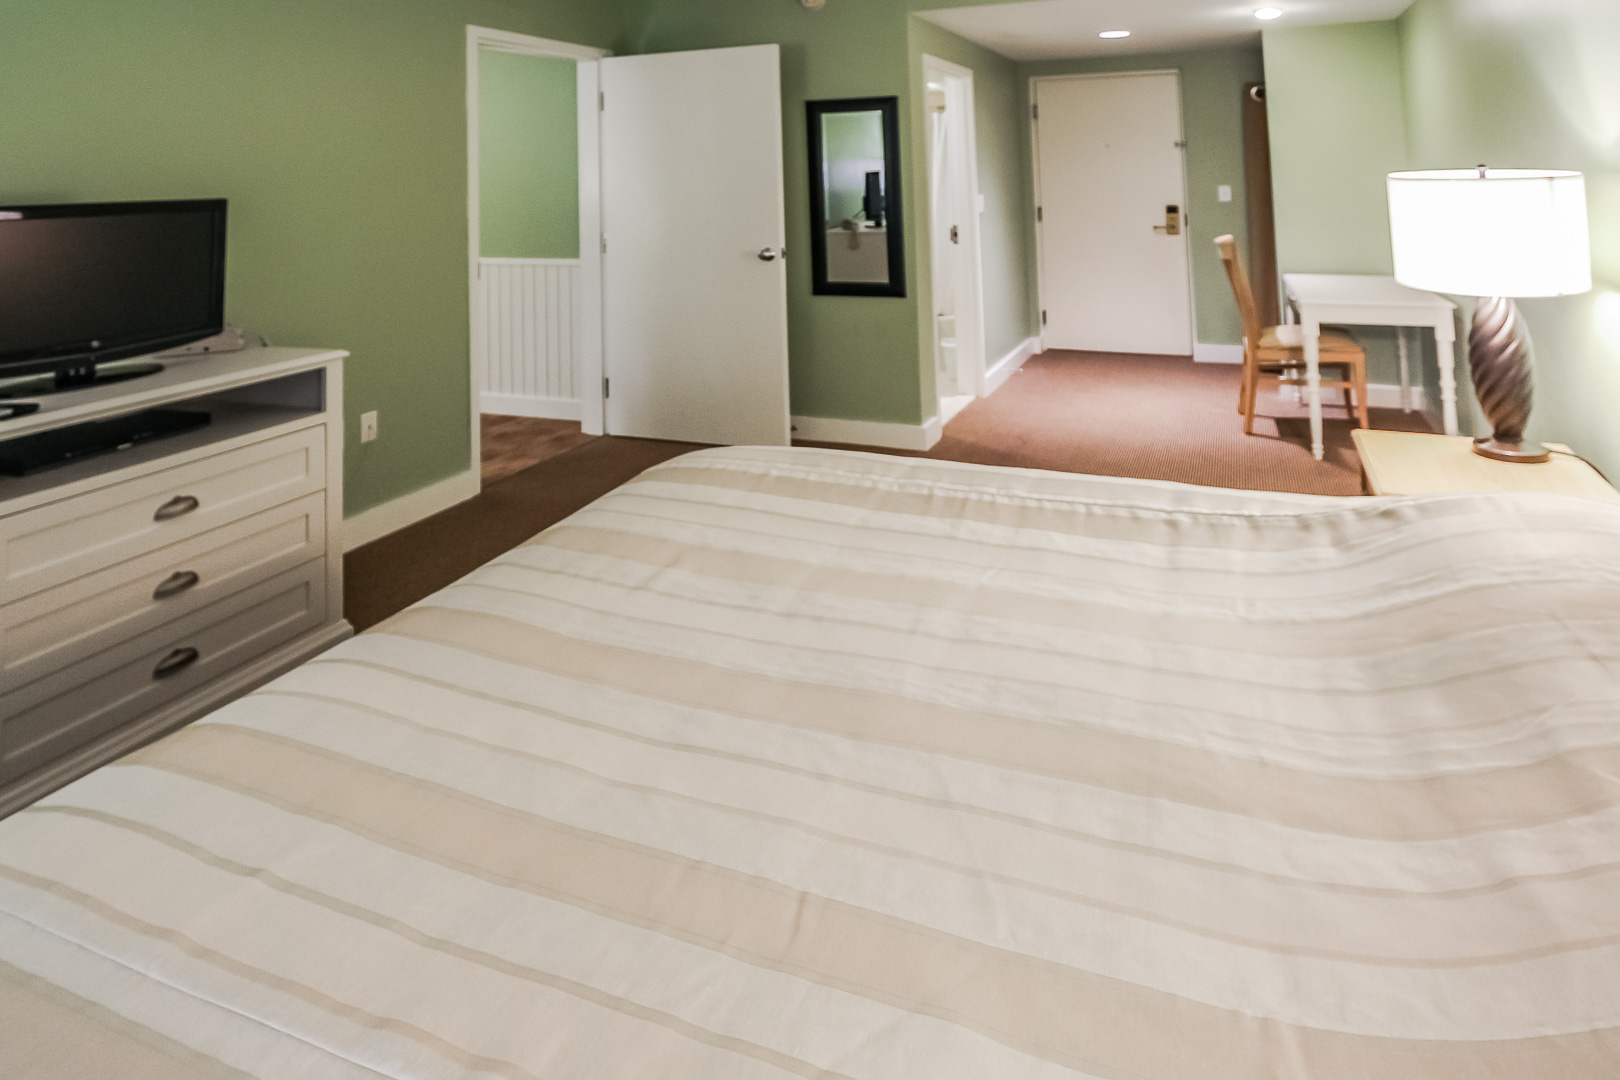 A spacious 1 bedroom at VRI's Holly Tree Resort in Massachusetts.